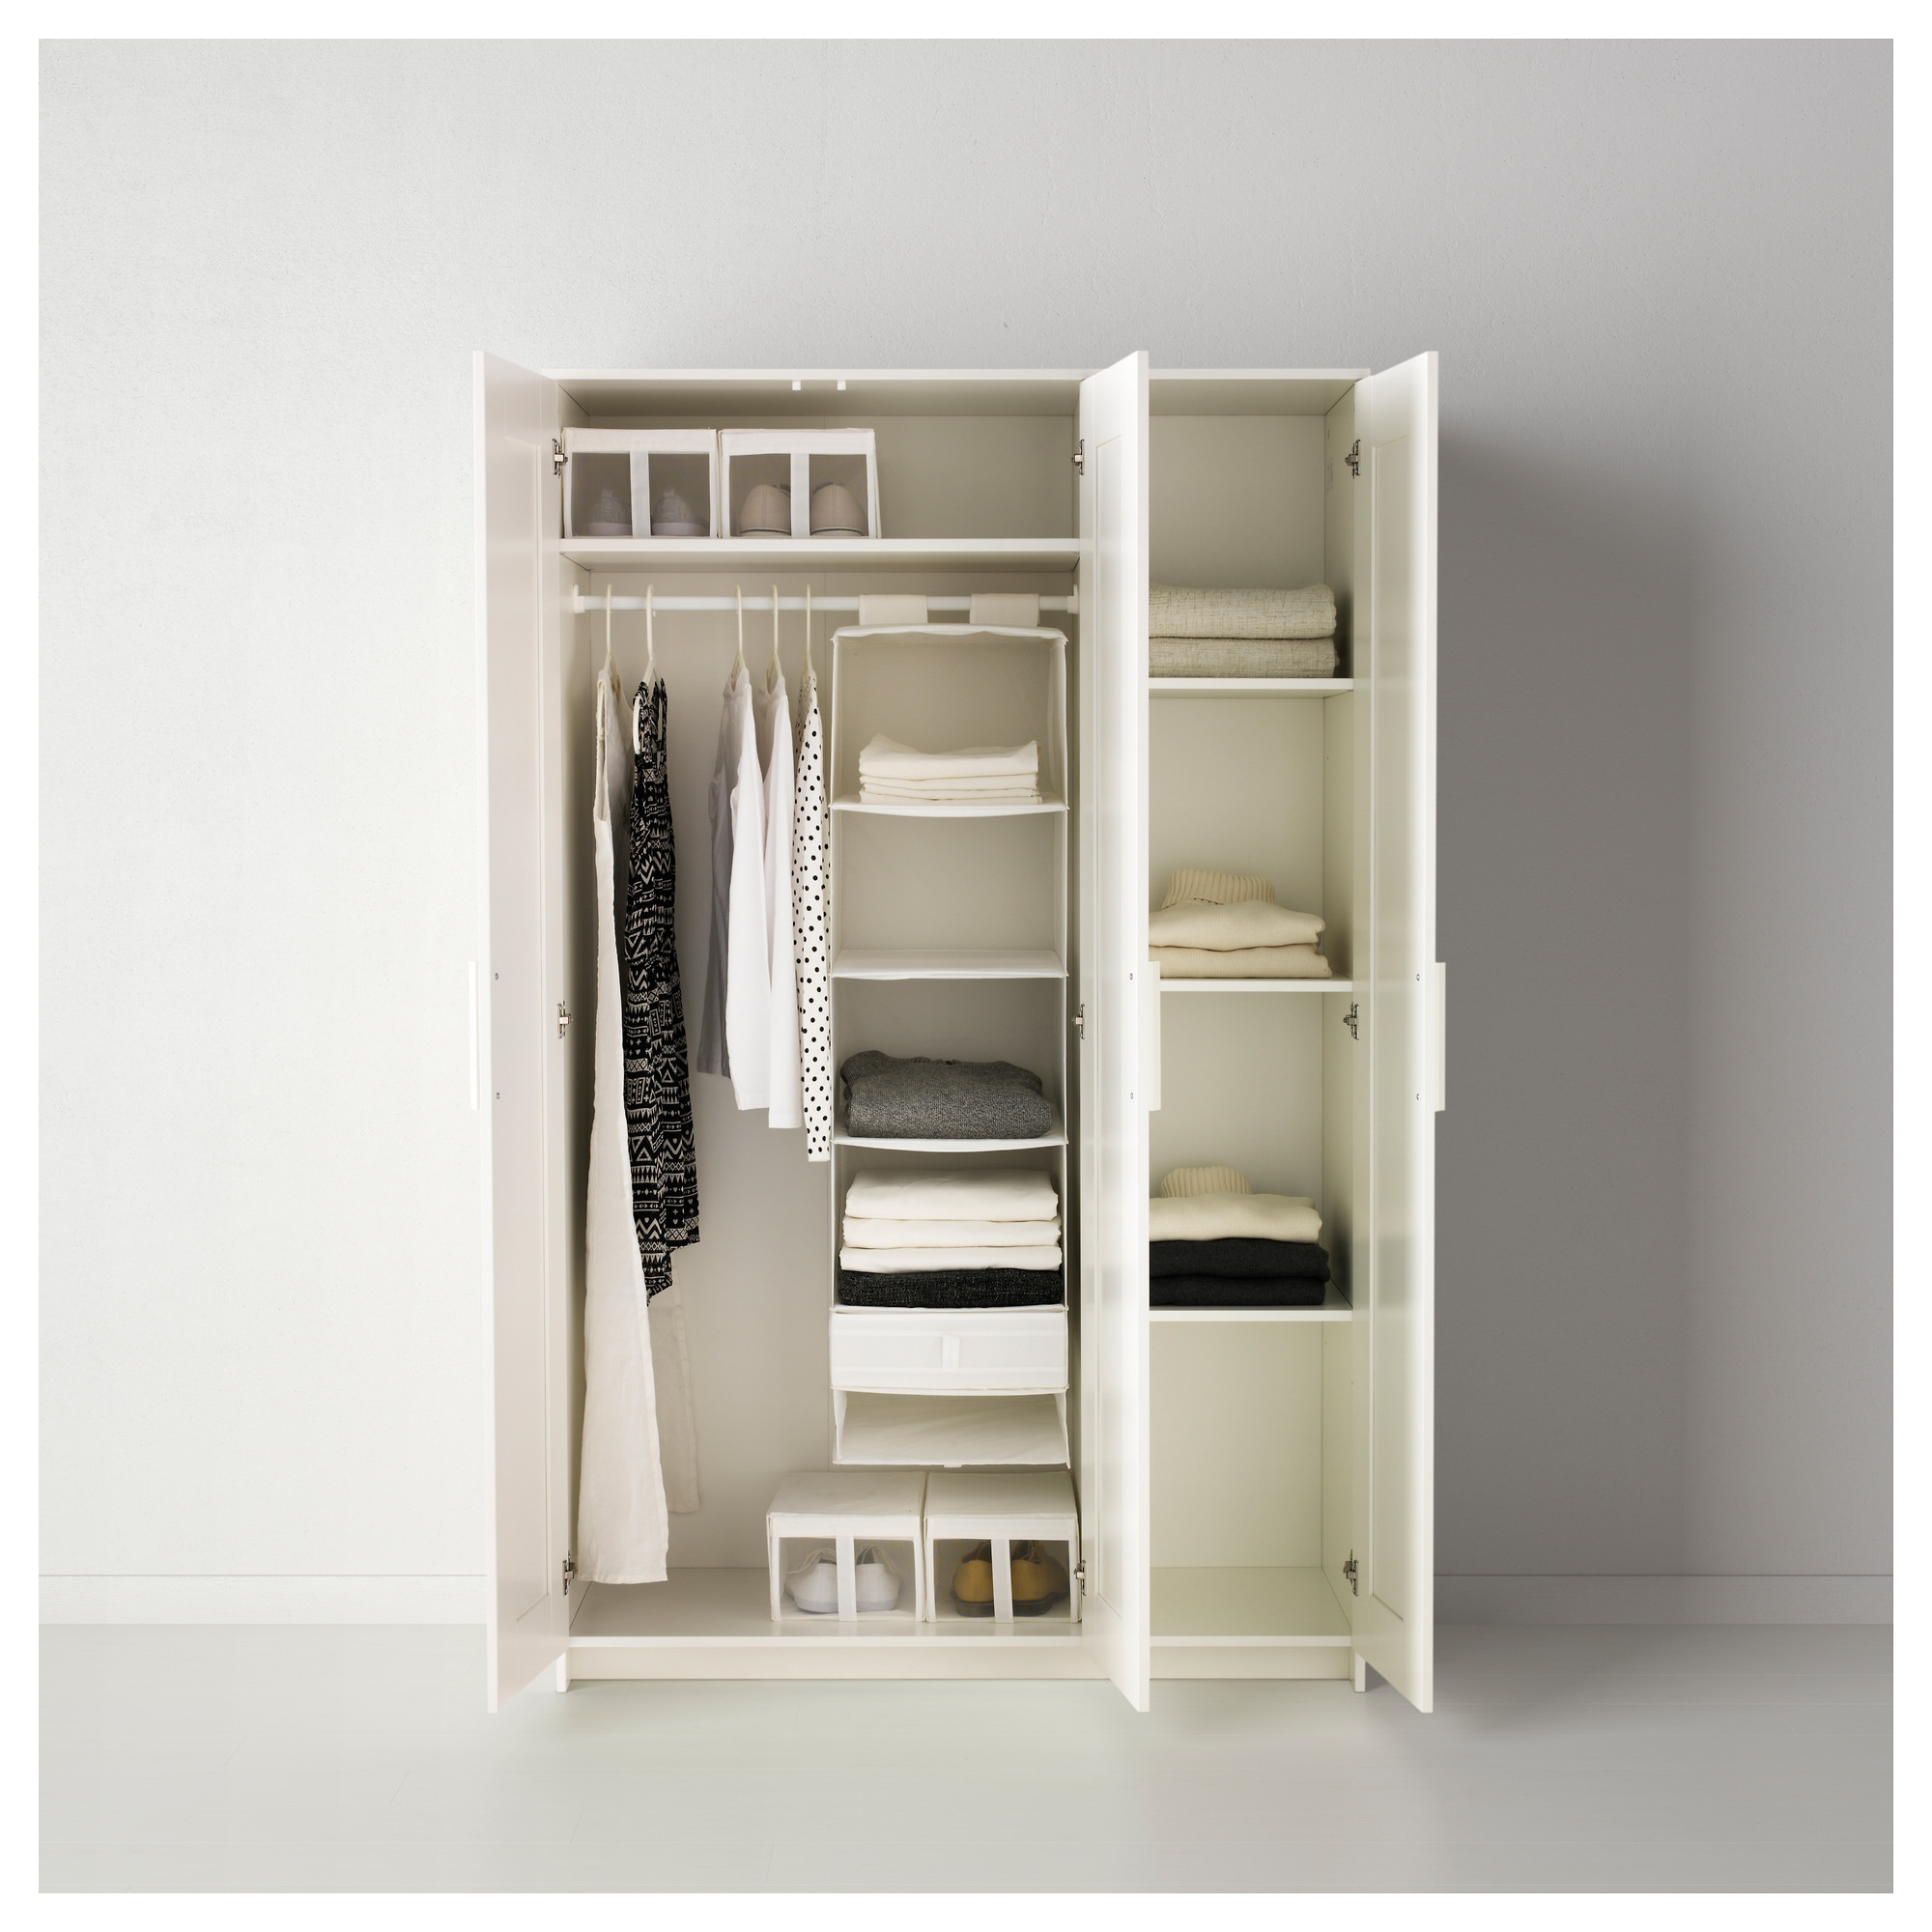 2 Door Cupboard Inside Designs brimnes wardrobe with 3 doors - white - ikea